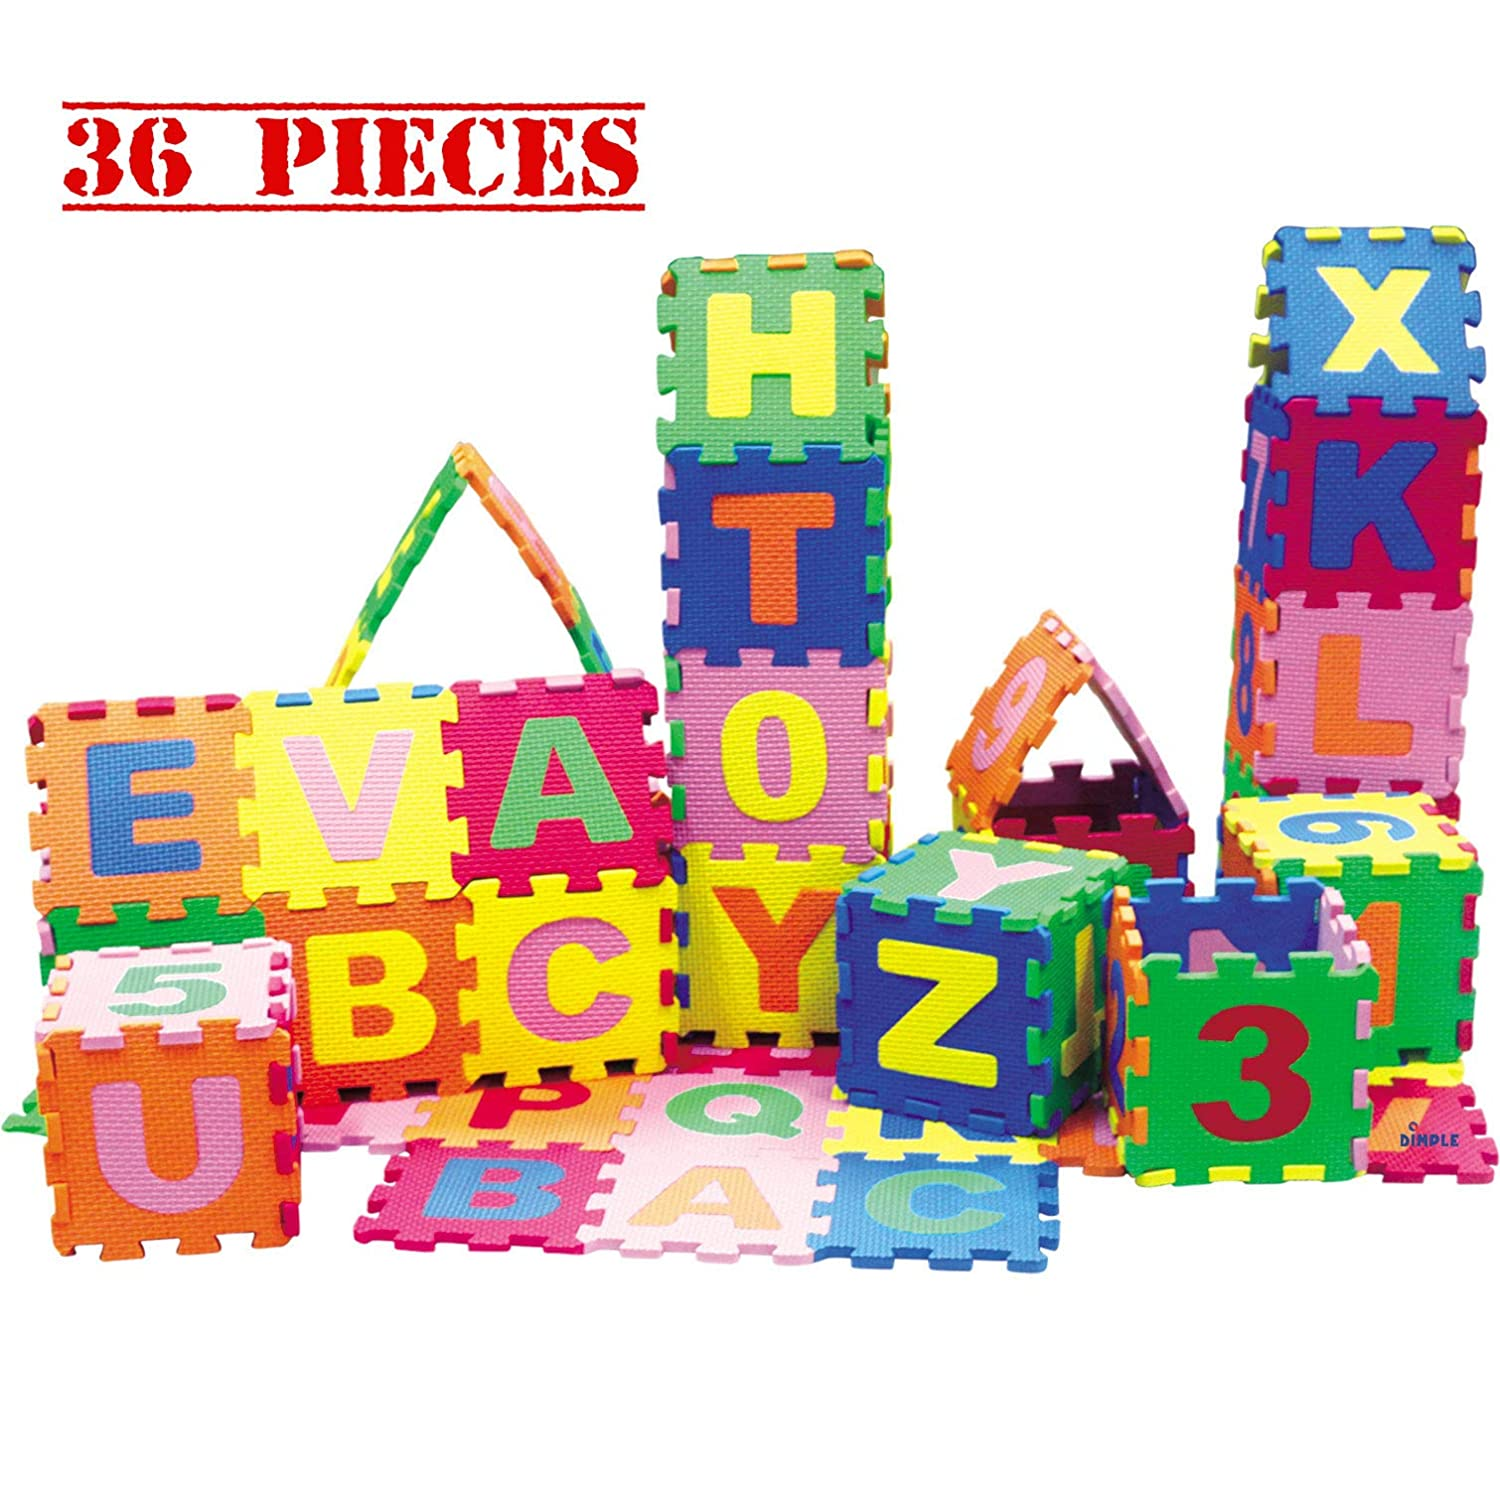 Baby Foam Play Mat (36-Piece Set) 5x5 Inches Interlocking Alphabet and Numbers Floor Puzzle Colorful EVA Tiles Girls, Boys Soft, Reusable, Easy to Clean by Dimple 71OGXiJ9toL